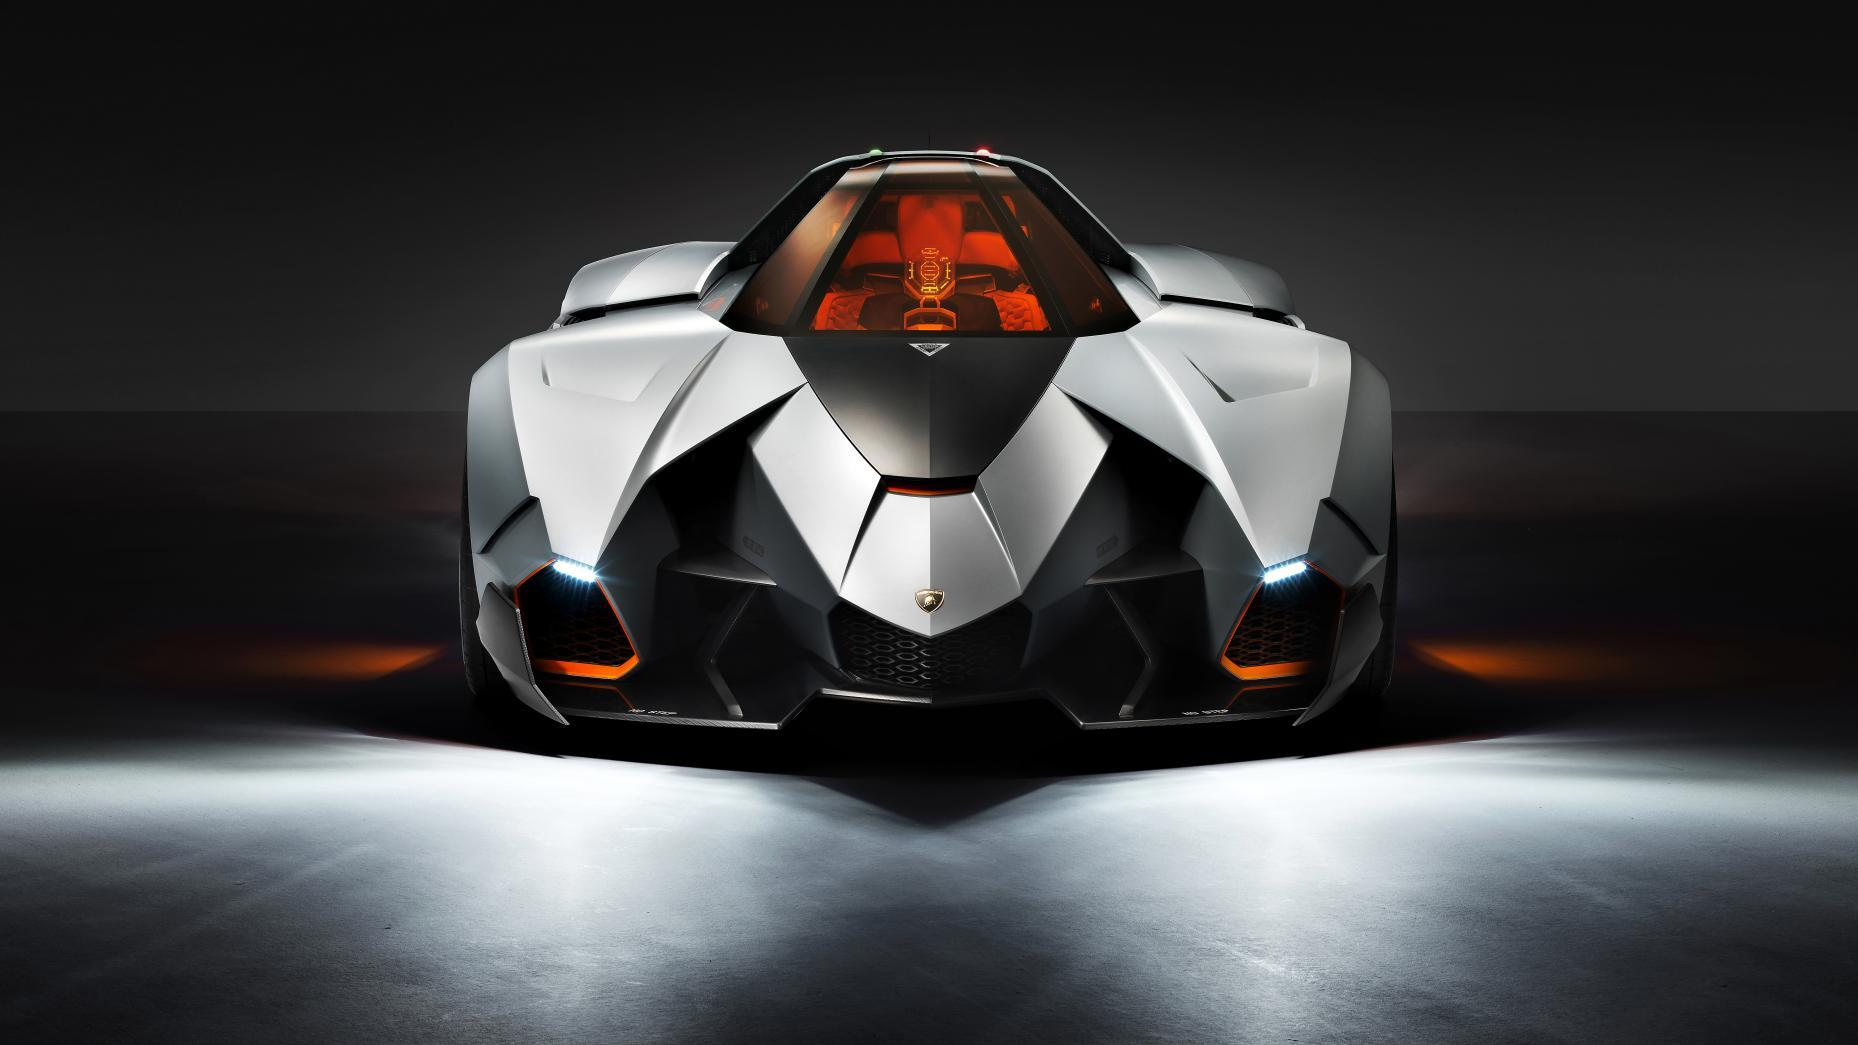 Gallery These Are The 13 Wildest Lamborghini Concept Cars Topgear